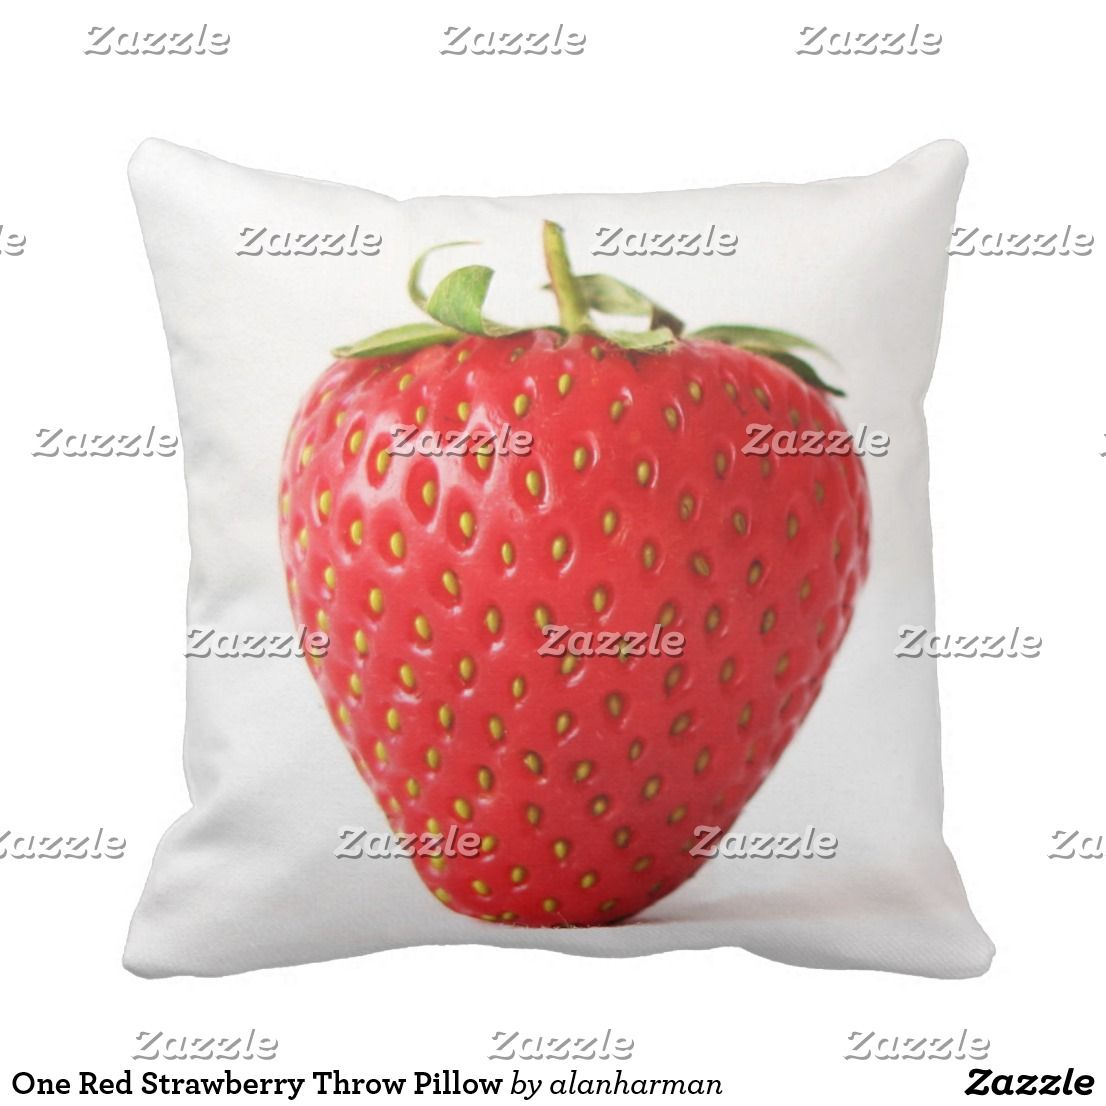 One Red Strawberry Tp Throw Pillow Zazzle Com Strawberry Throw Pillows Red